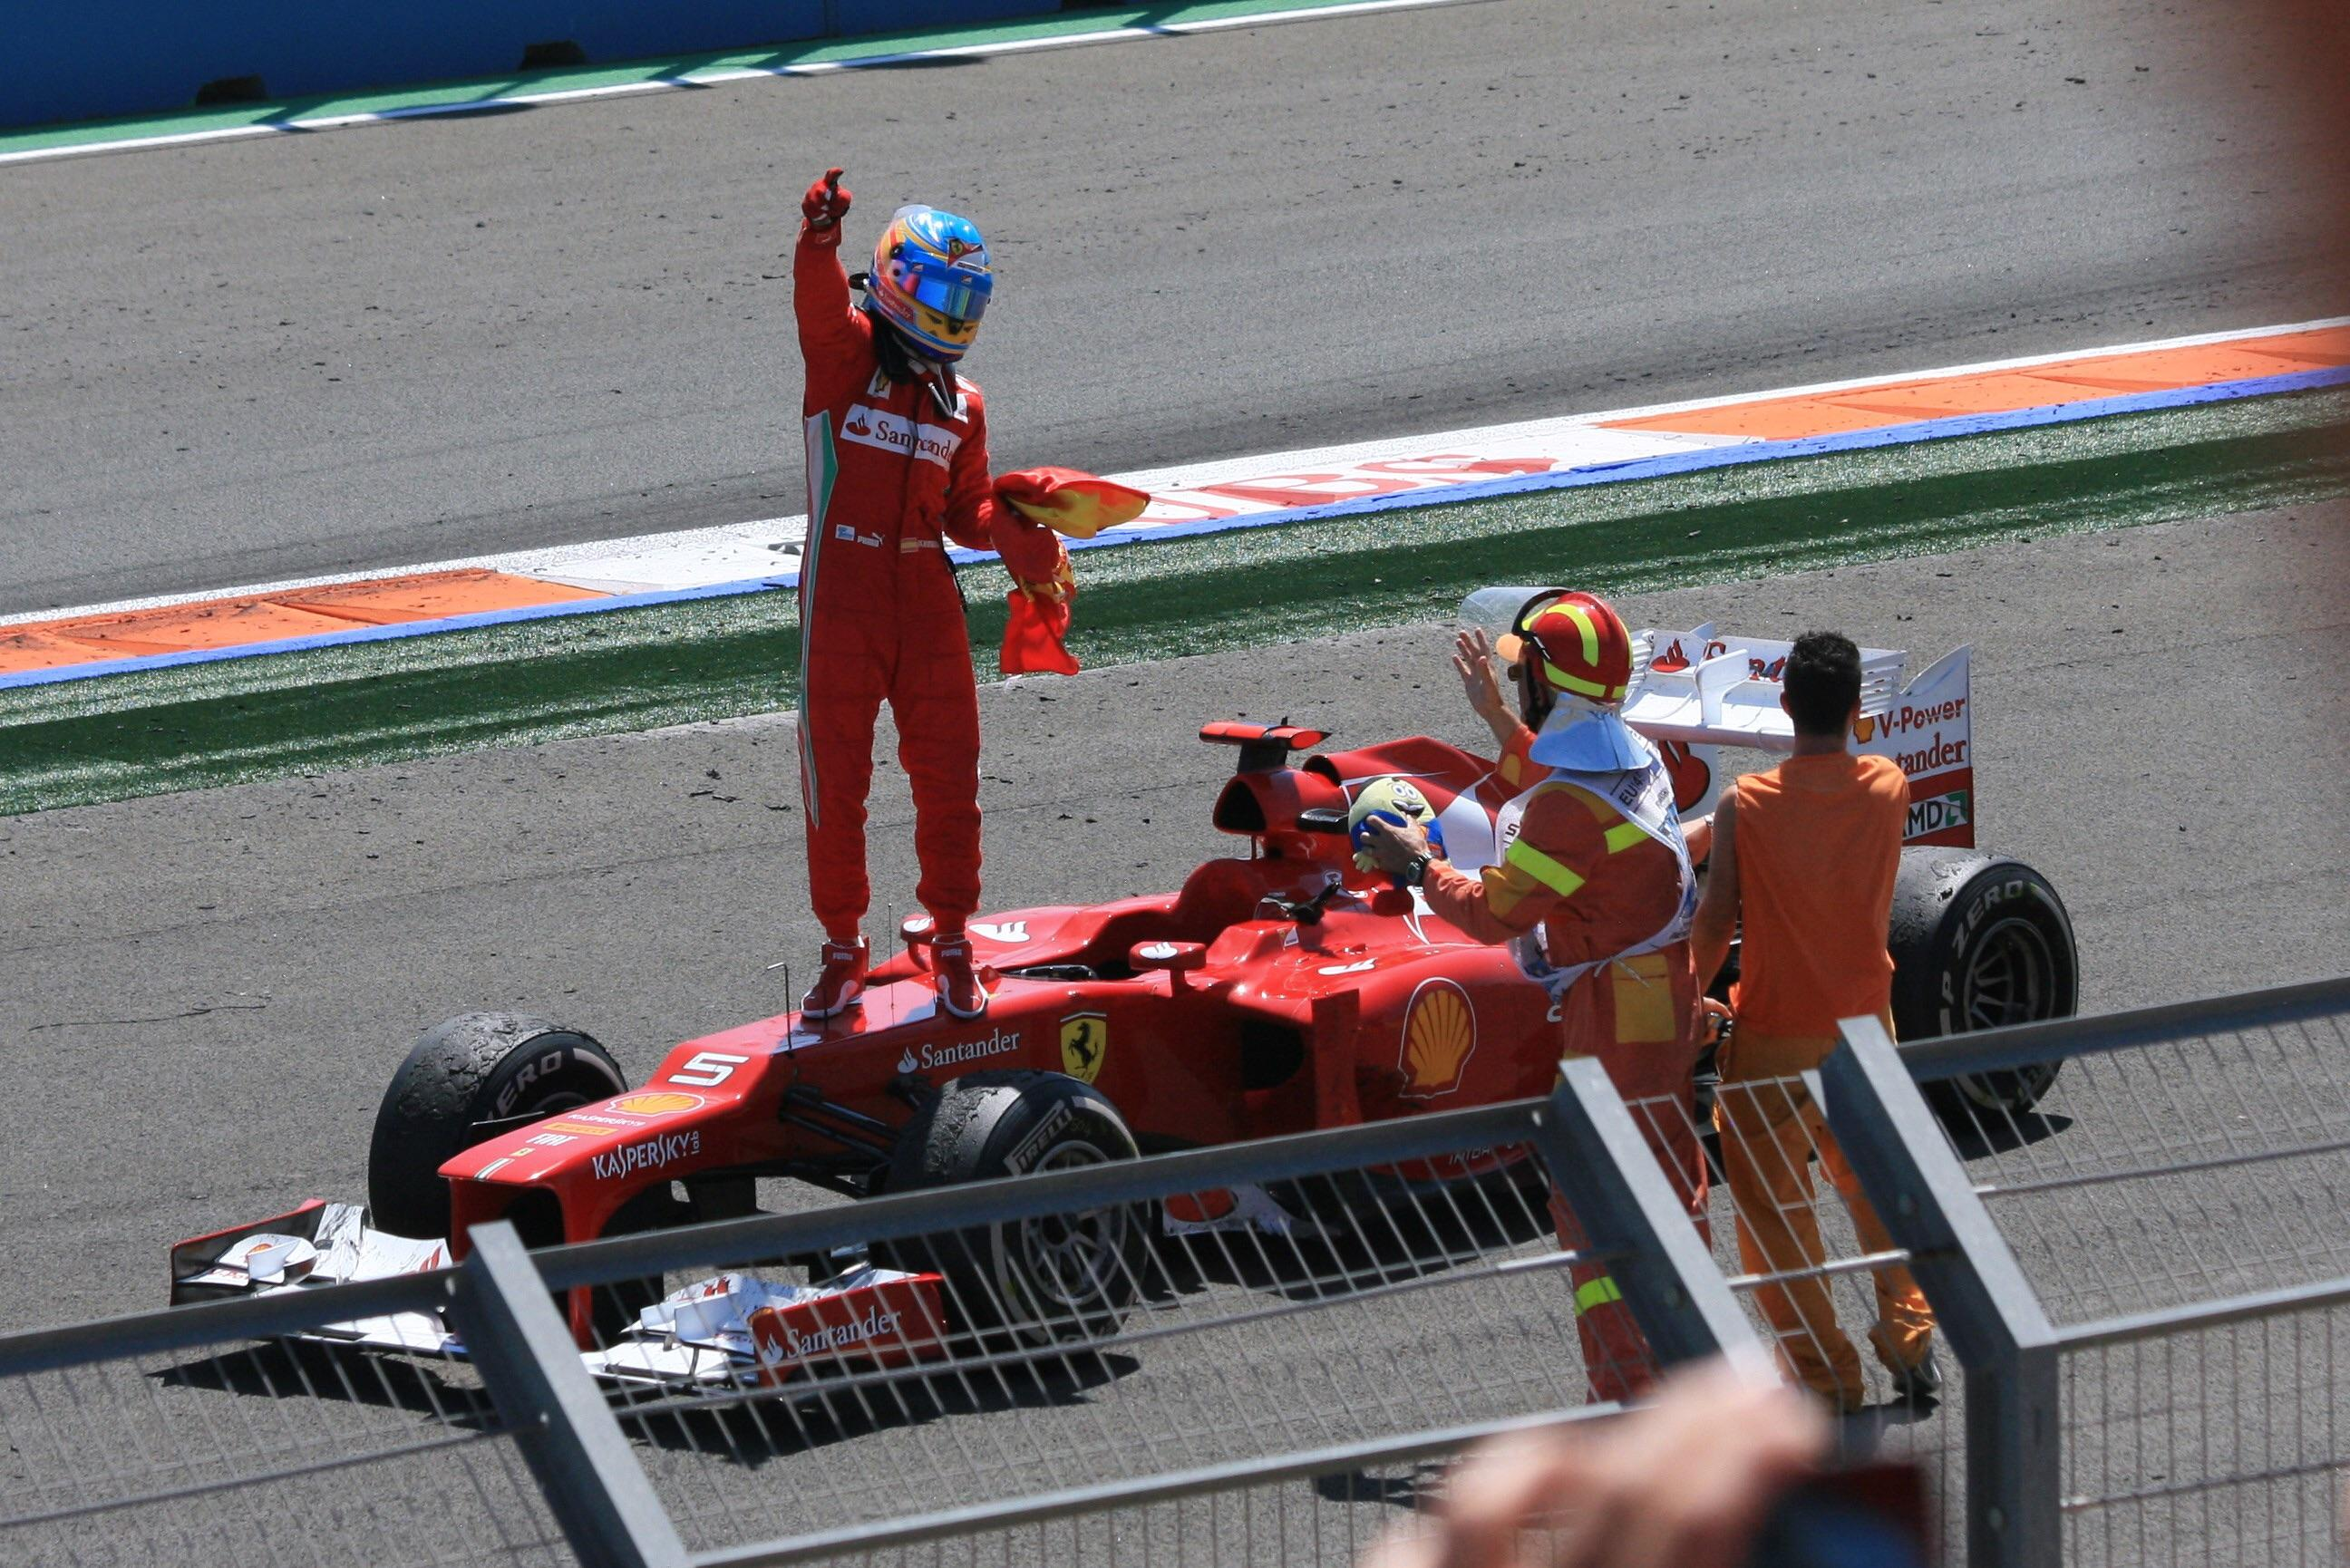 Fernando Alonso F1 Grand Prix On This Day In 2012 Fernando Alonso Won The European Grand Prix